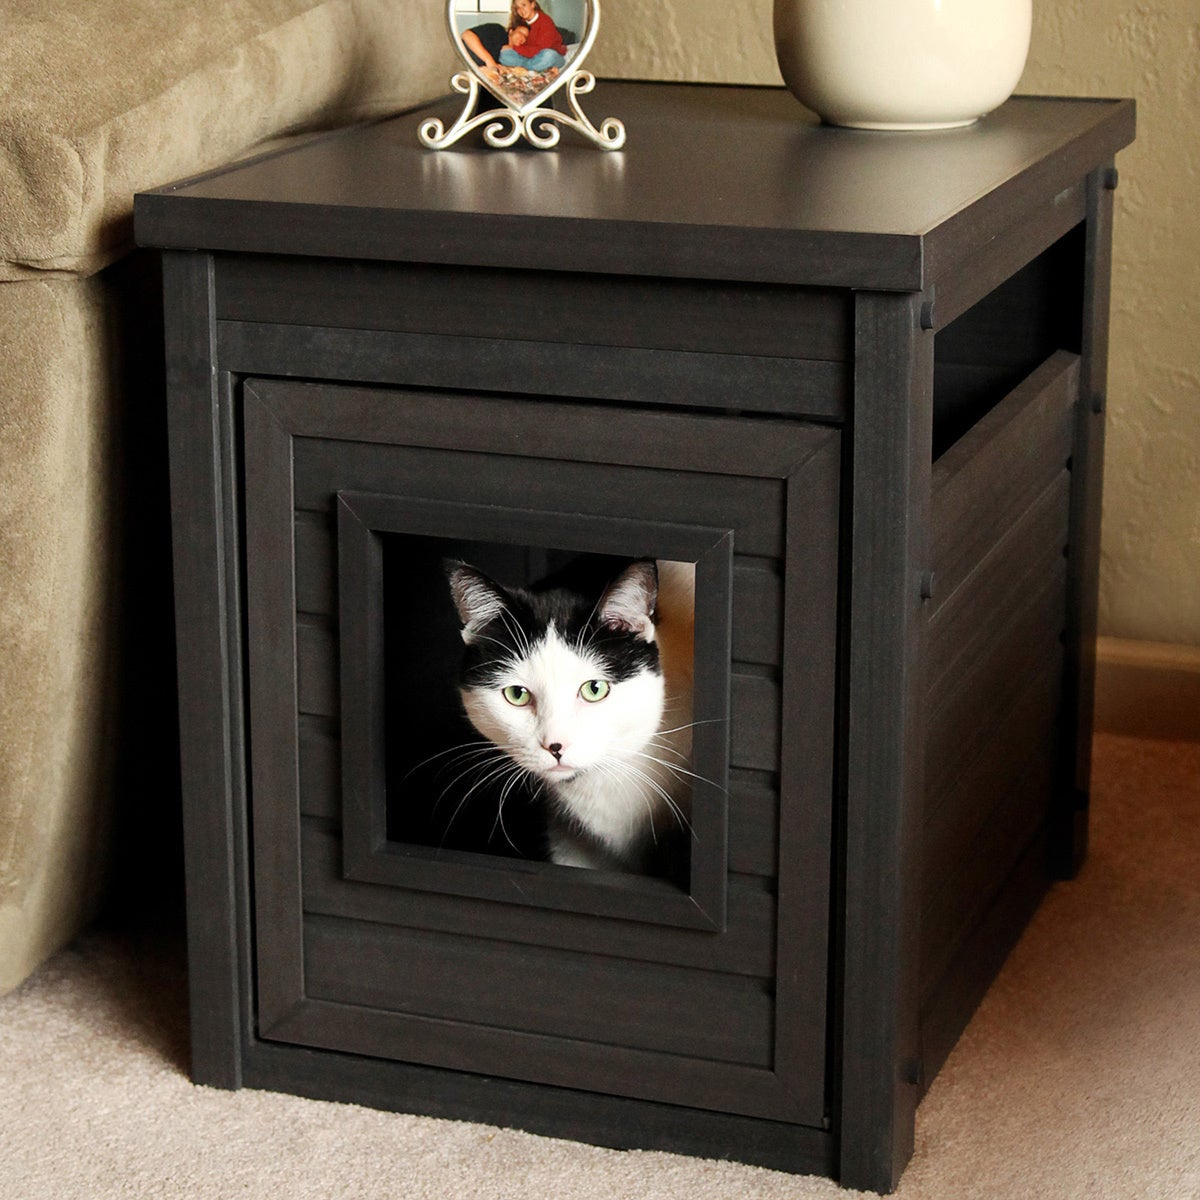 10 Ideas For Hiding Your Cat Litter Box CONTEMPORIST - HD Wallpapers